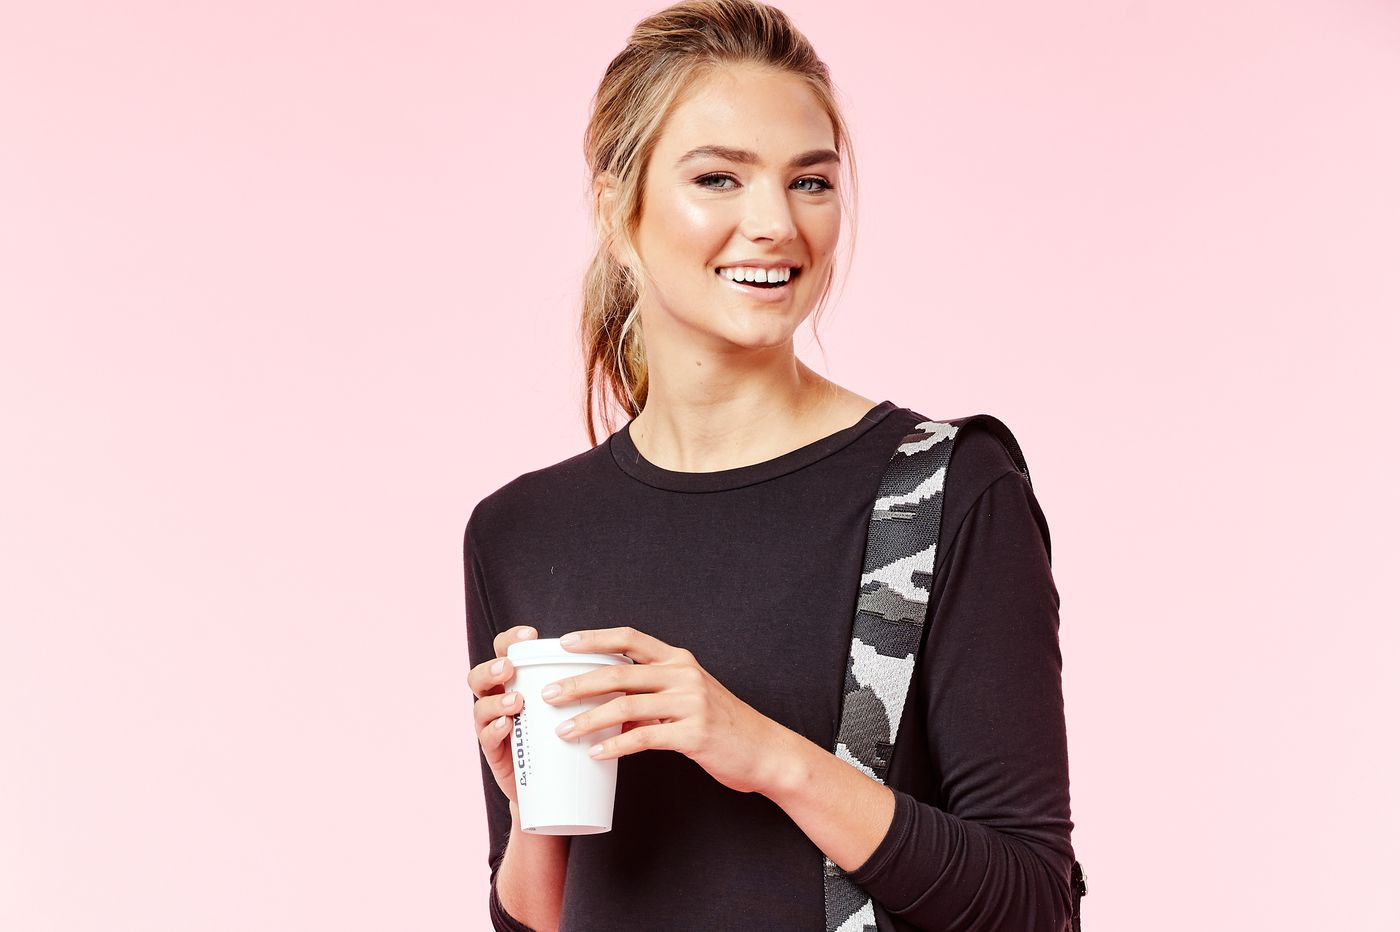 Philly online retailer launches private-label sportswear collection for the girl-on-the-go | Elizabeth Wellington